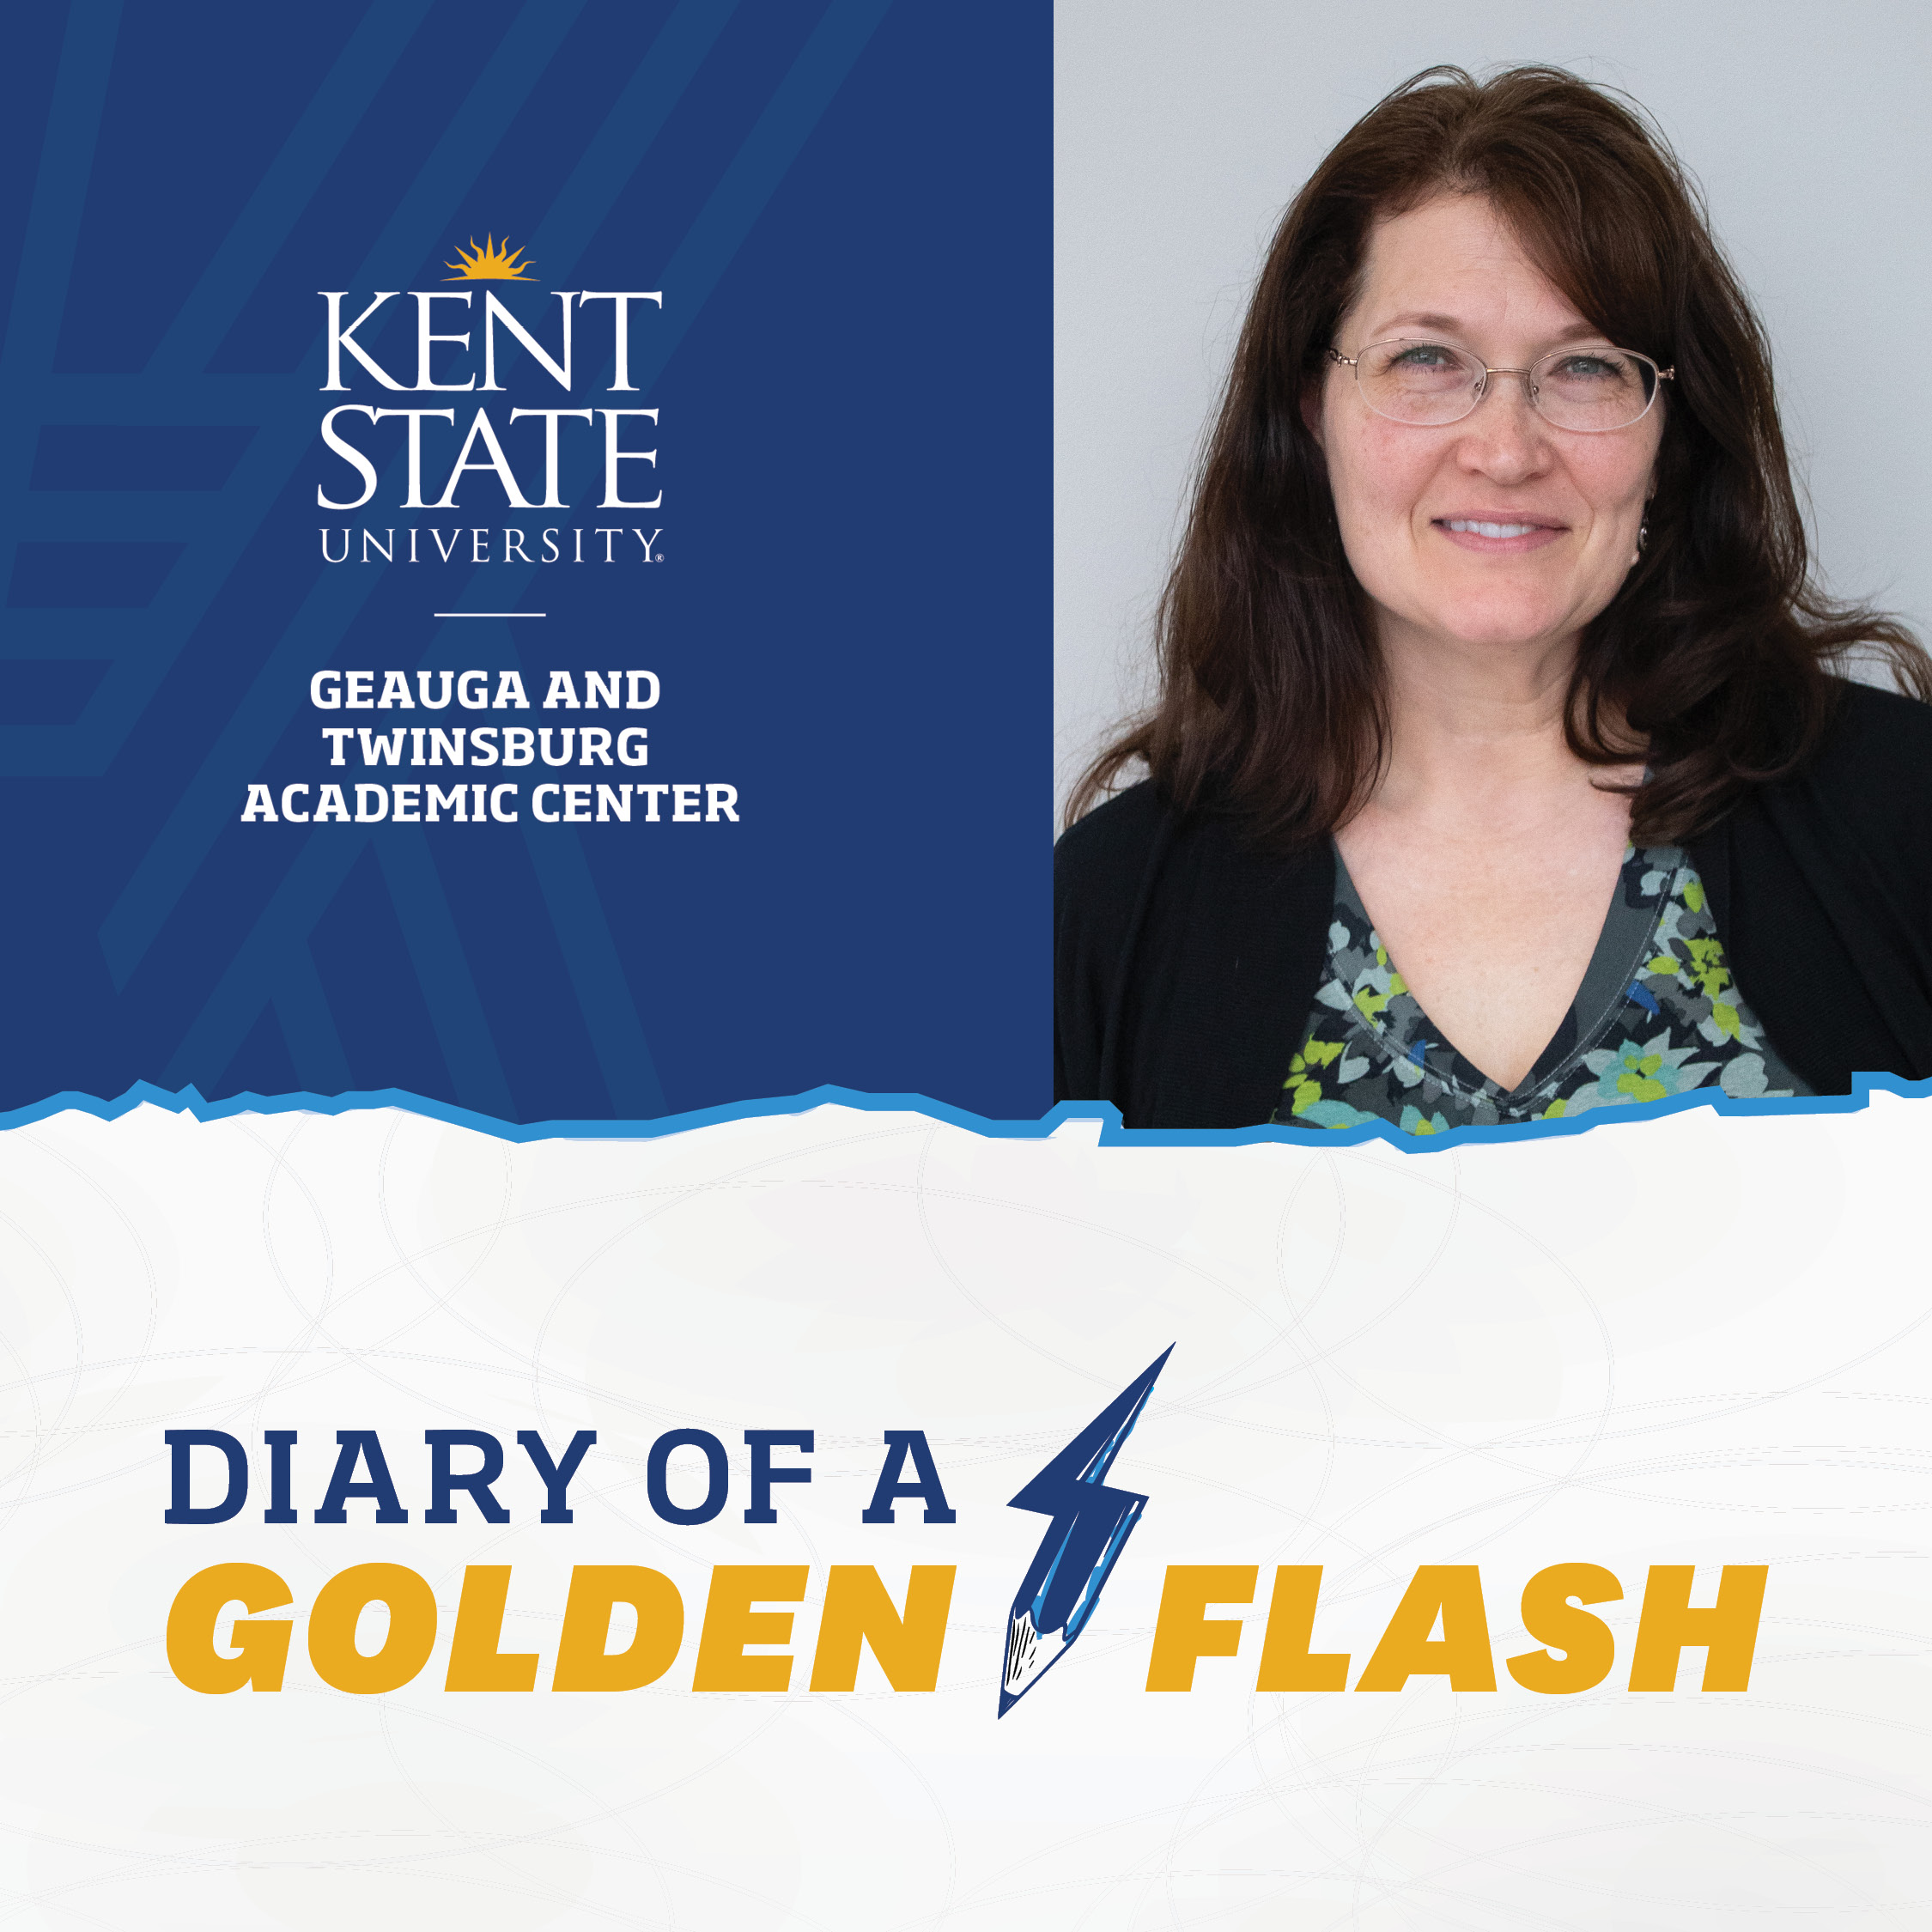 Diary of a Golden Flash Dr. Julie Evey